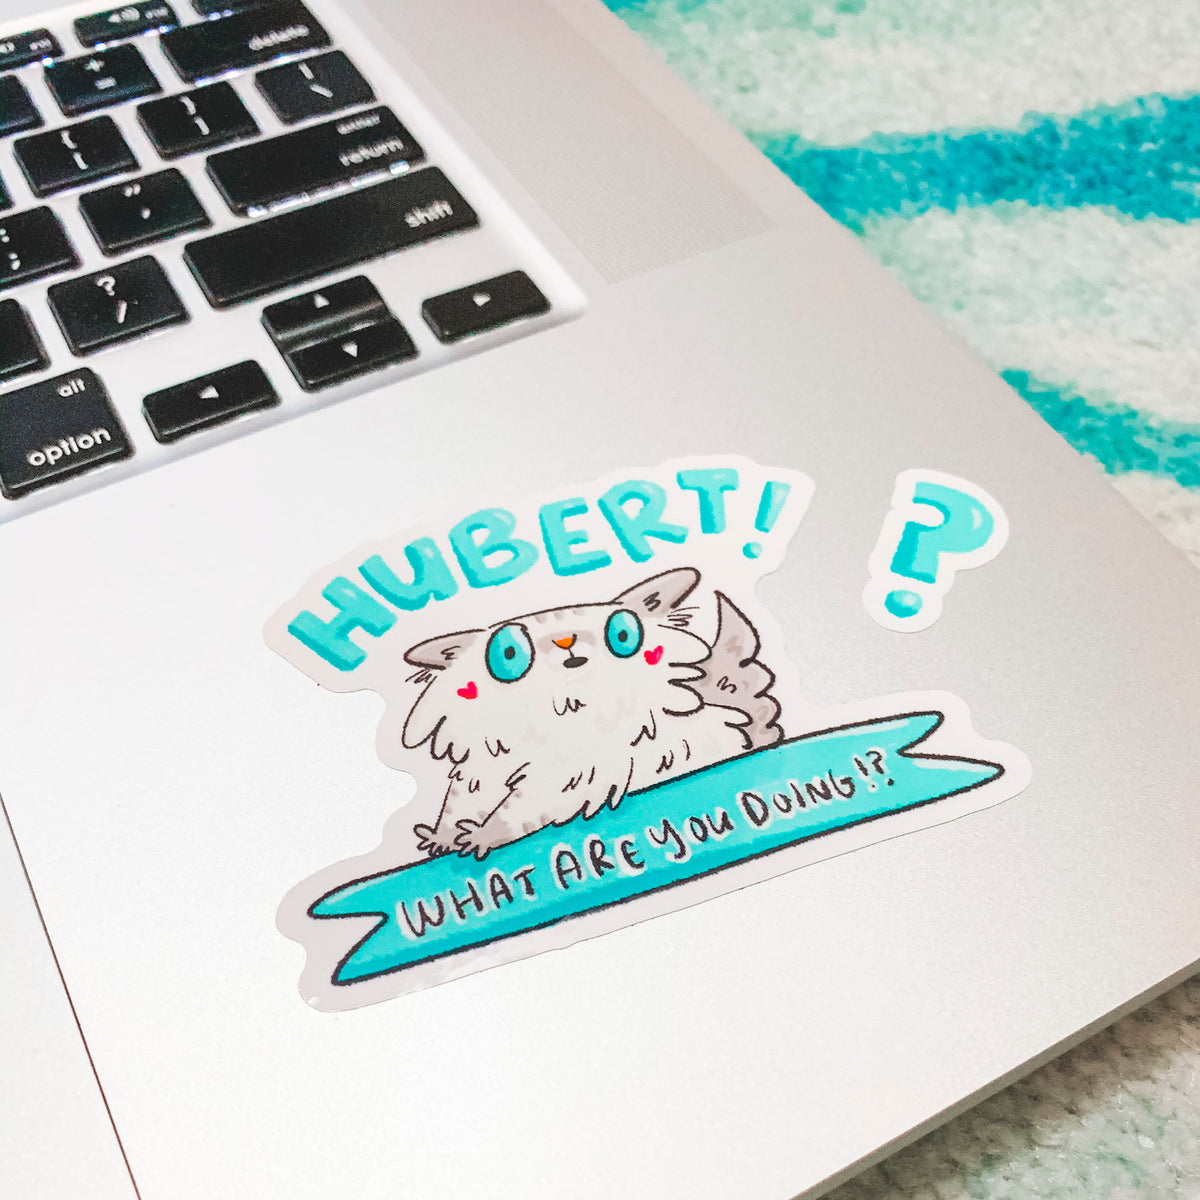 Hubert! What Are You Doing!? - Vinyl Sticker